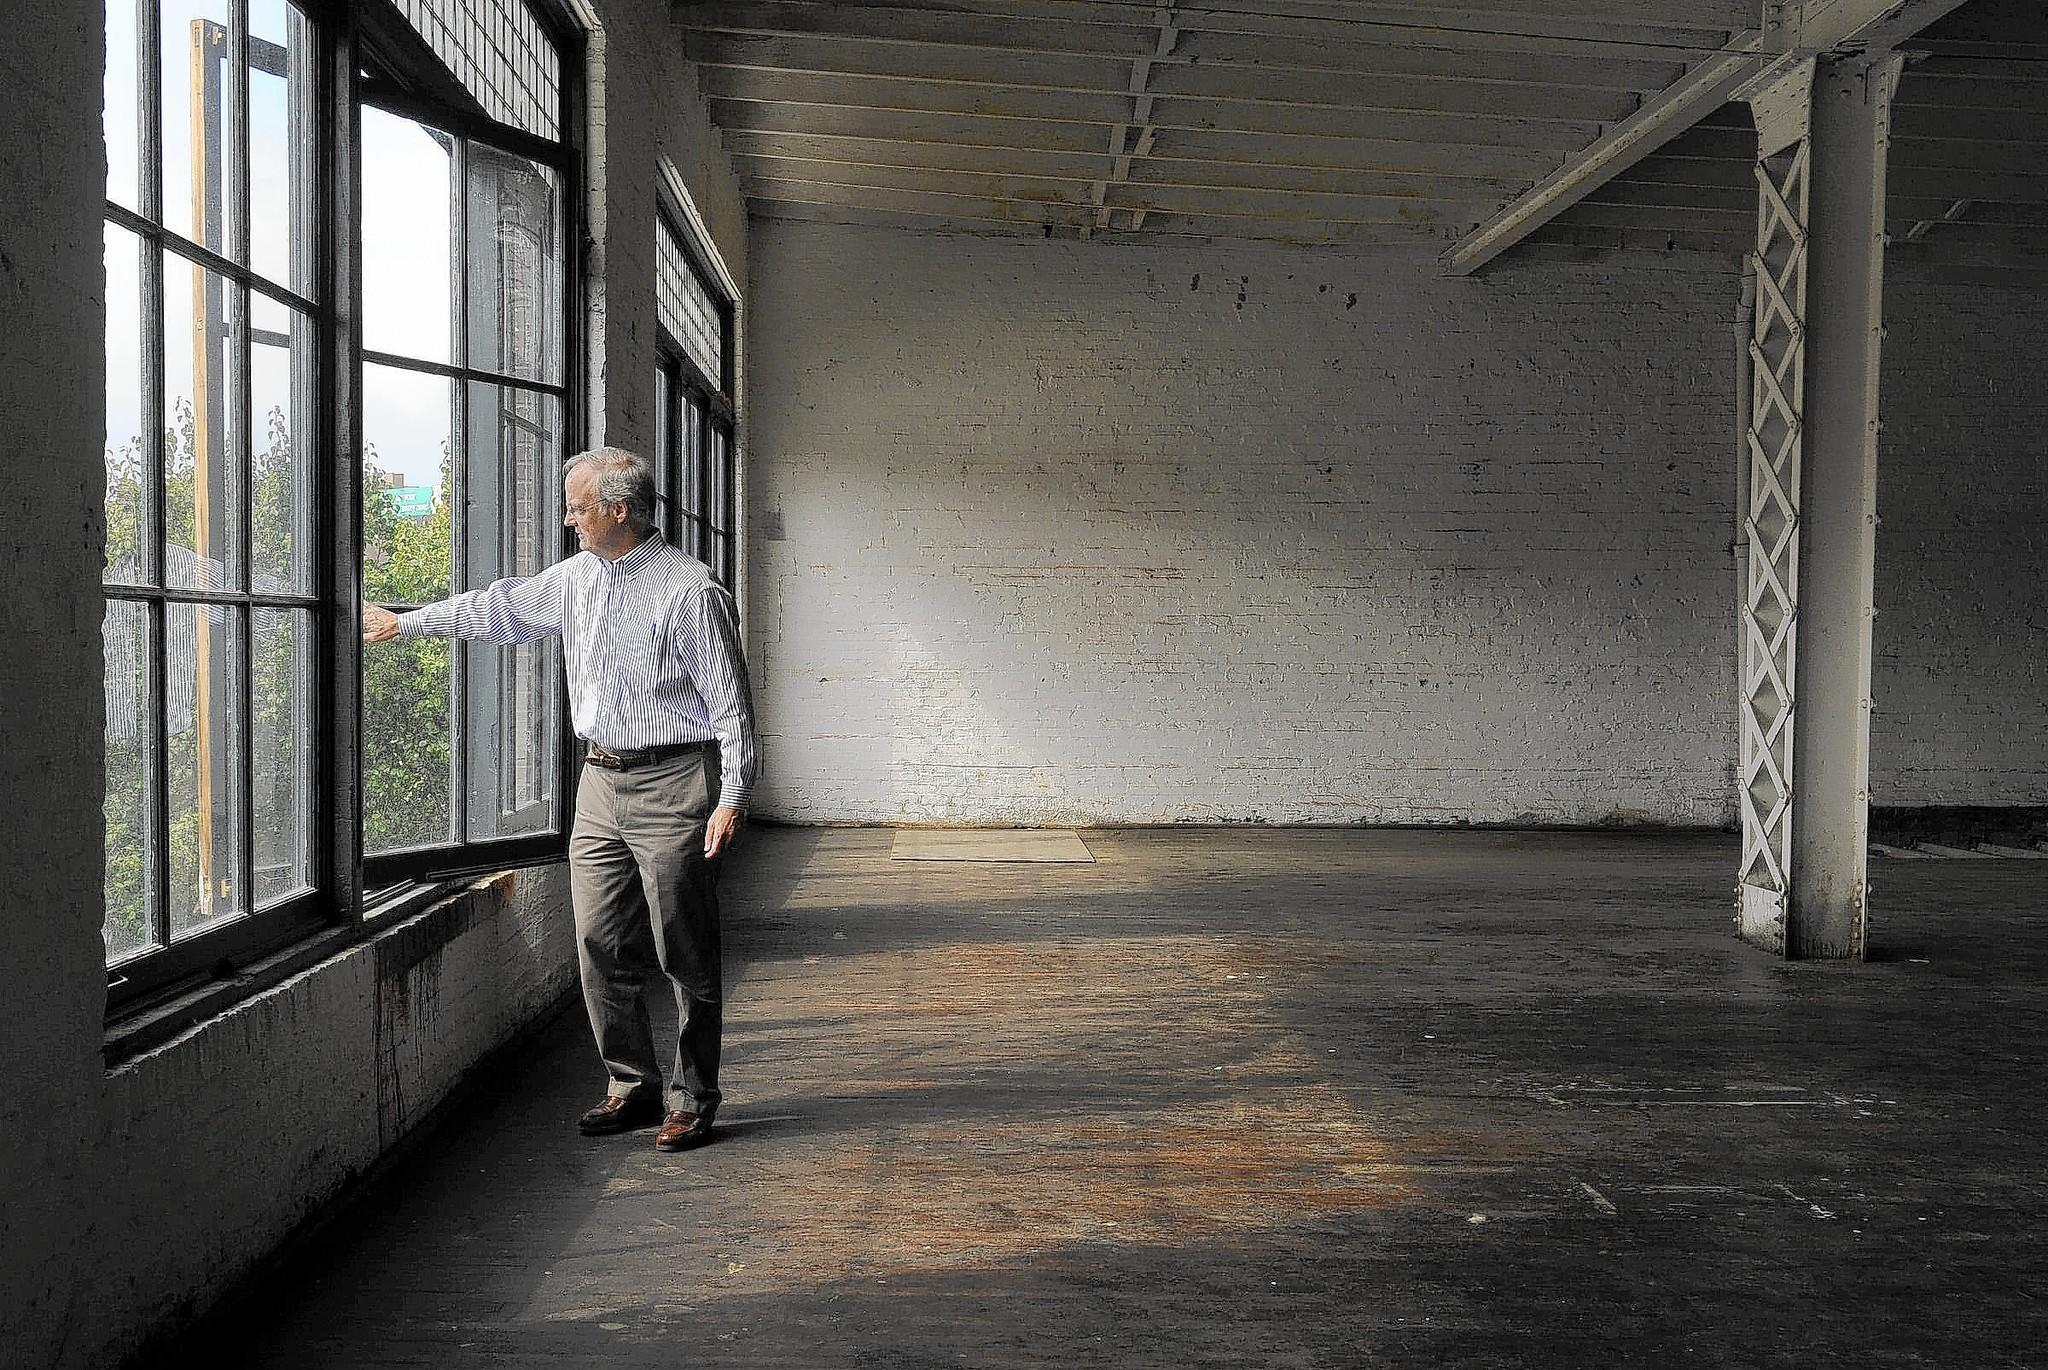 Mac MacLure of the Baltimore Arts Realty Corporation opens a third floor window in the former 1920s auto showroom and garage that his company is converting to artists' studios and businesses.